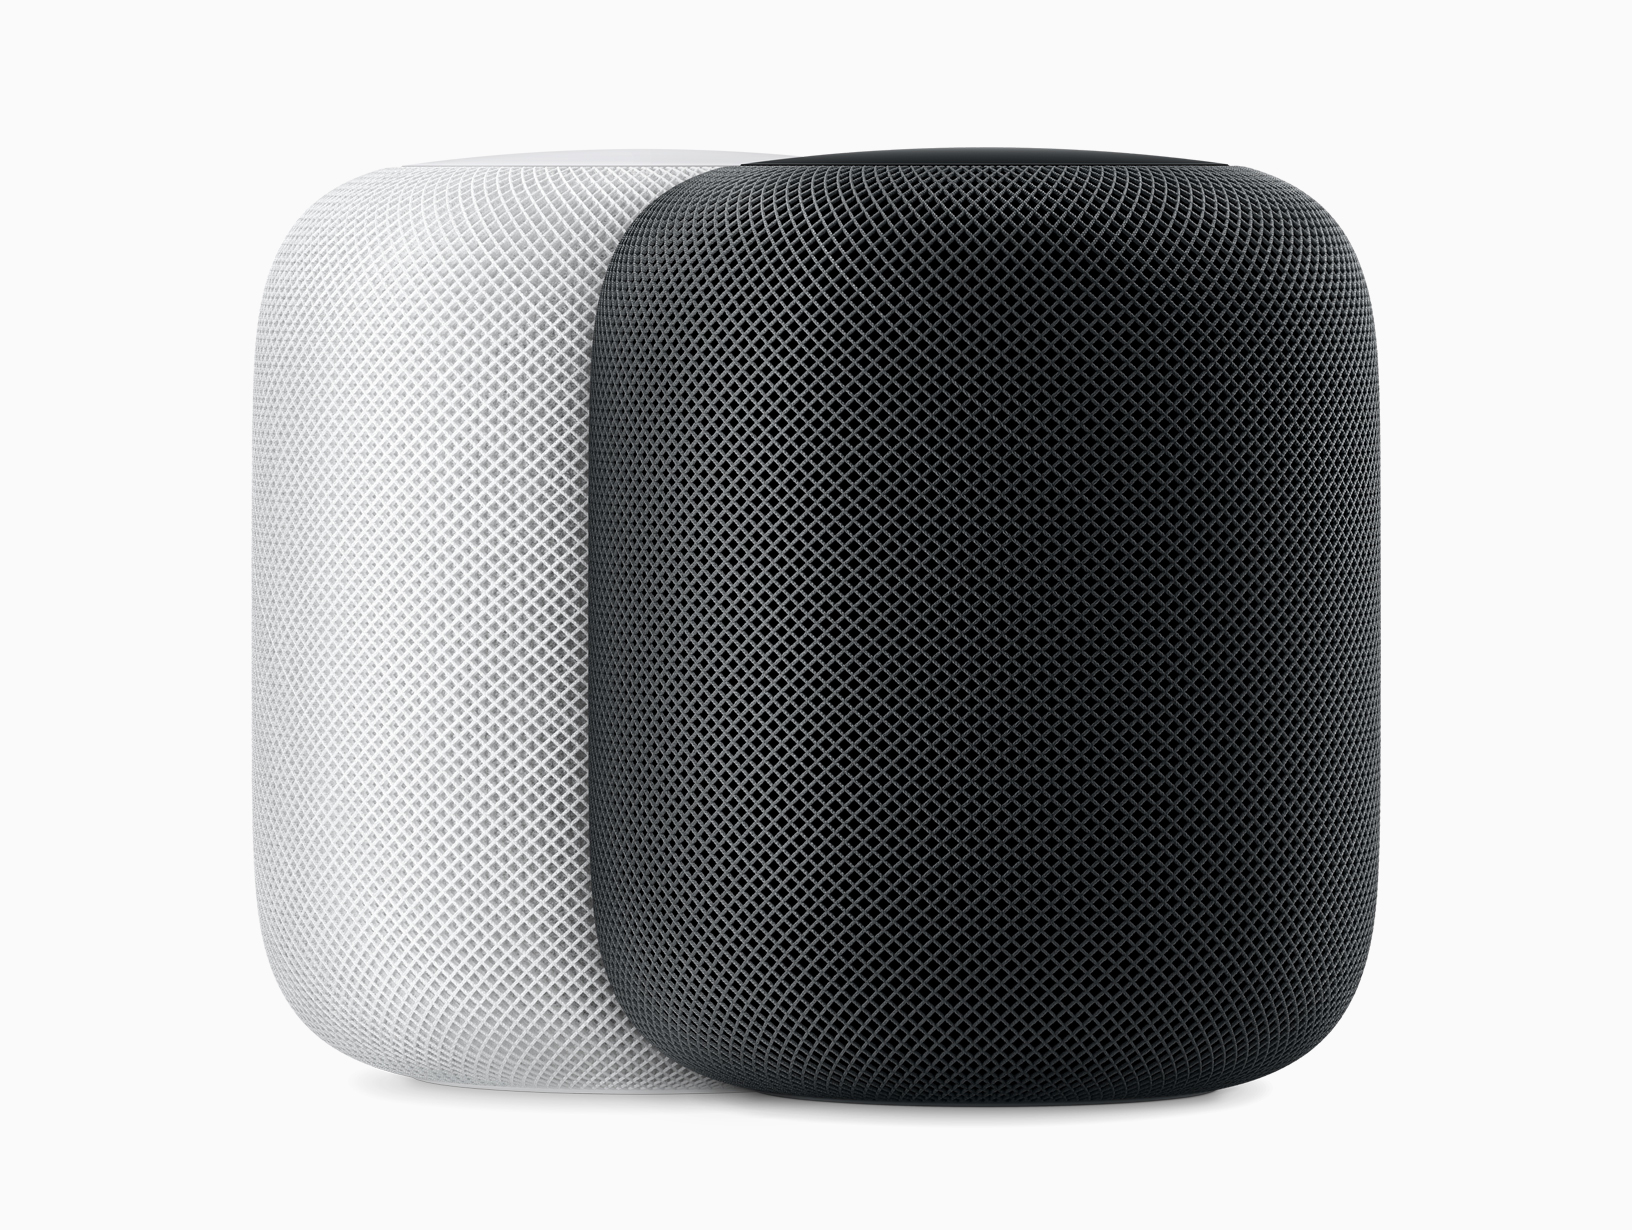 IOS 11.4 Adds Stereo Pairing to Air Play 2, HomePod Speaker